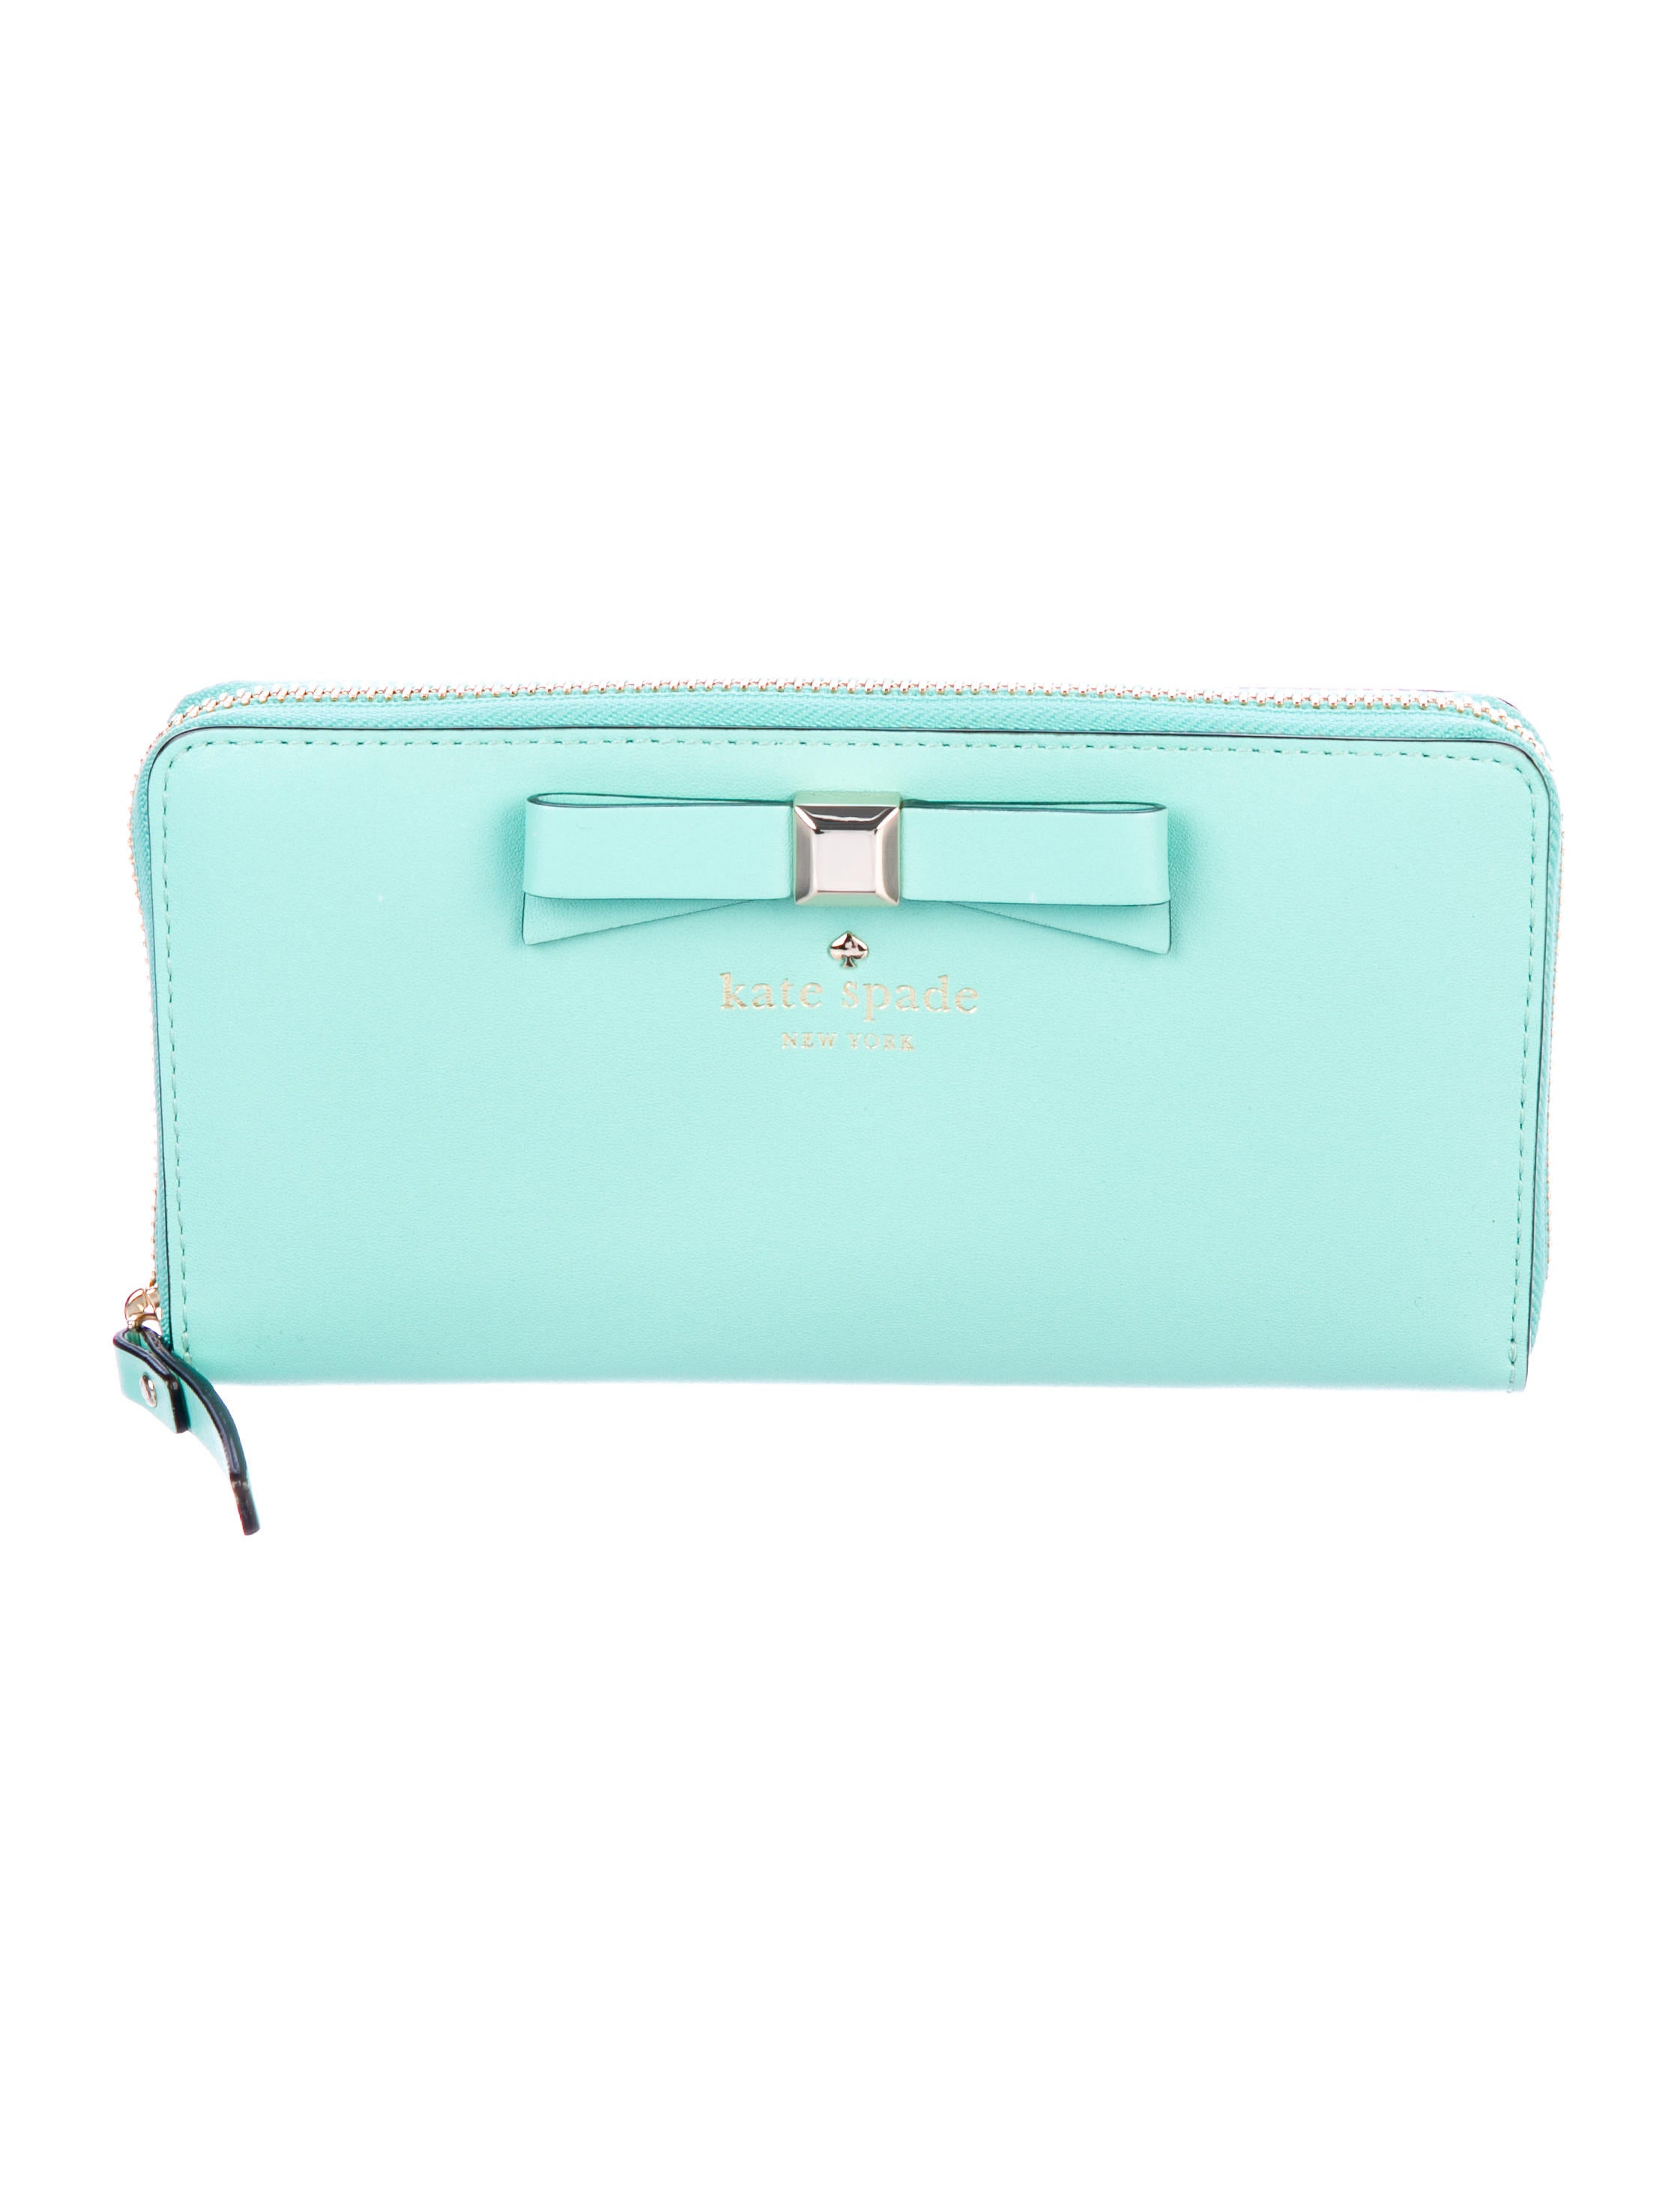 0aa7b03b3122 Kate Spade New York Holly Street Lacey Wallet w/ Tags - Accessories ...